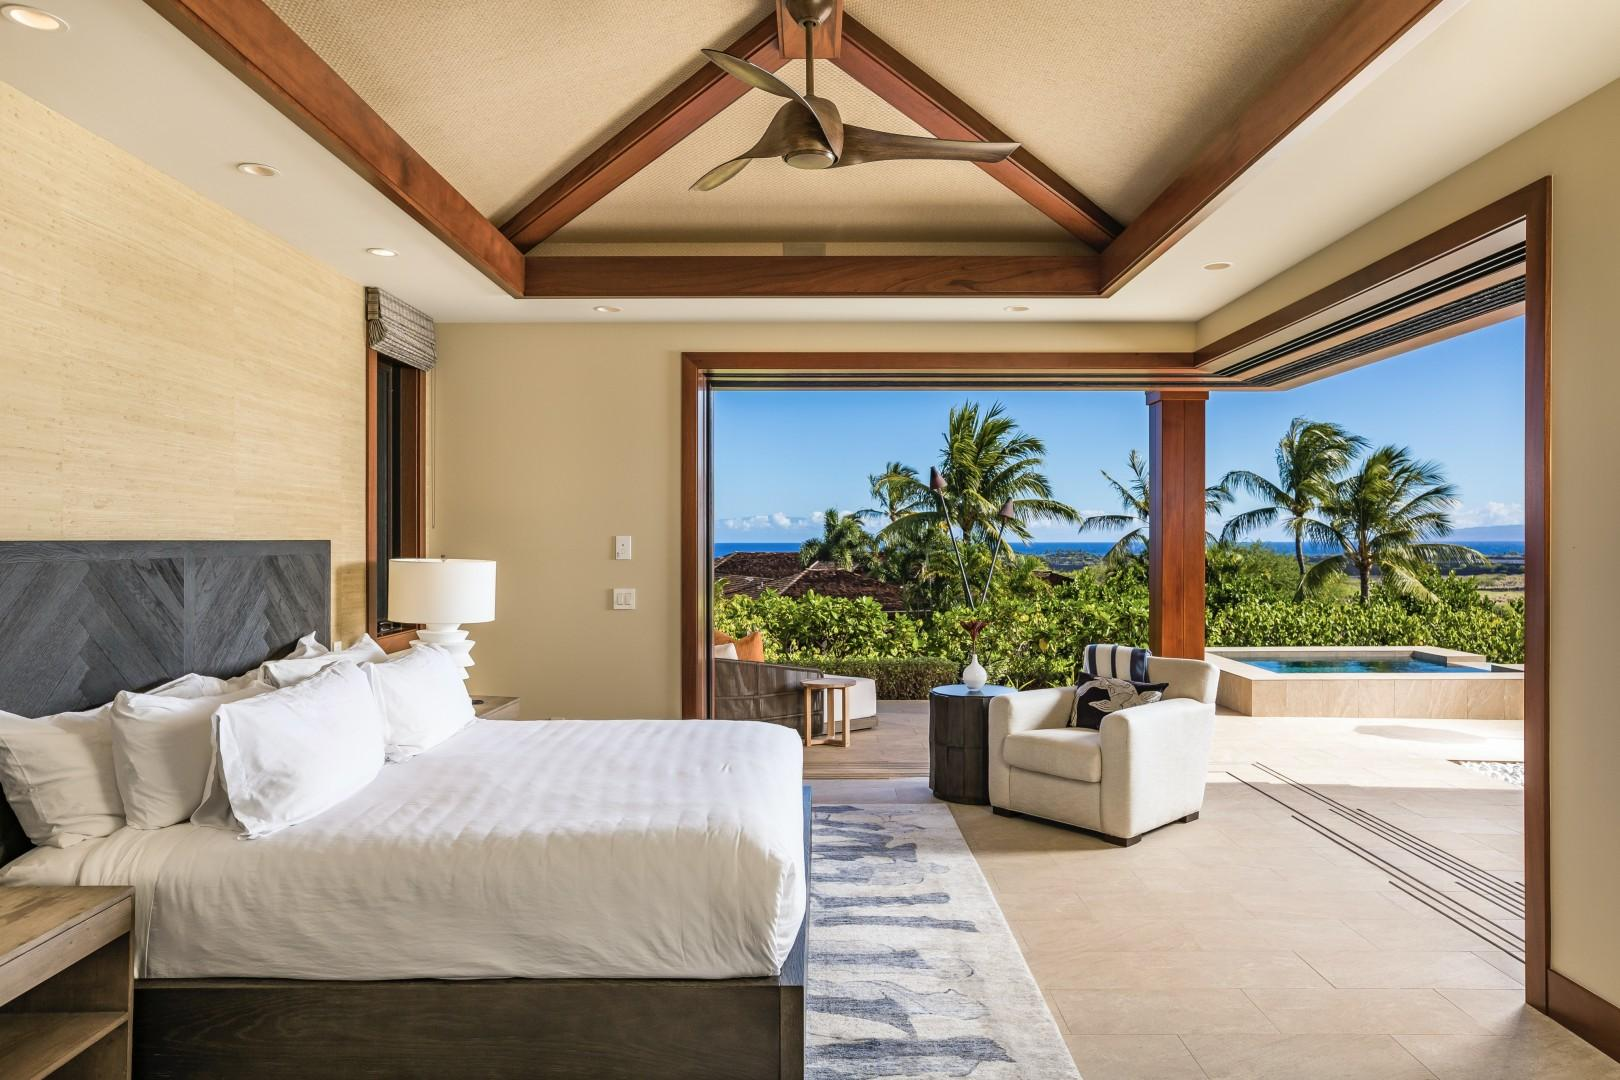 Master suite expands onto the lanai via two walls of pocket doors, showcasing ocean, pool deck and mountain vistas.